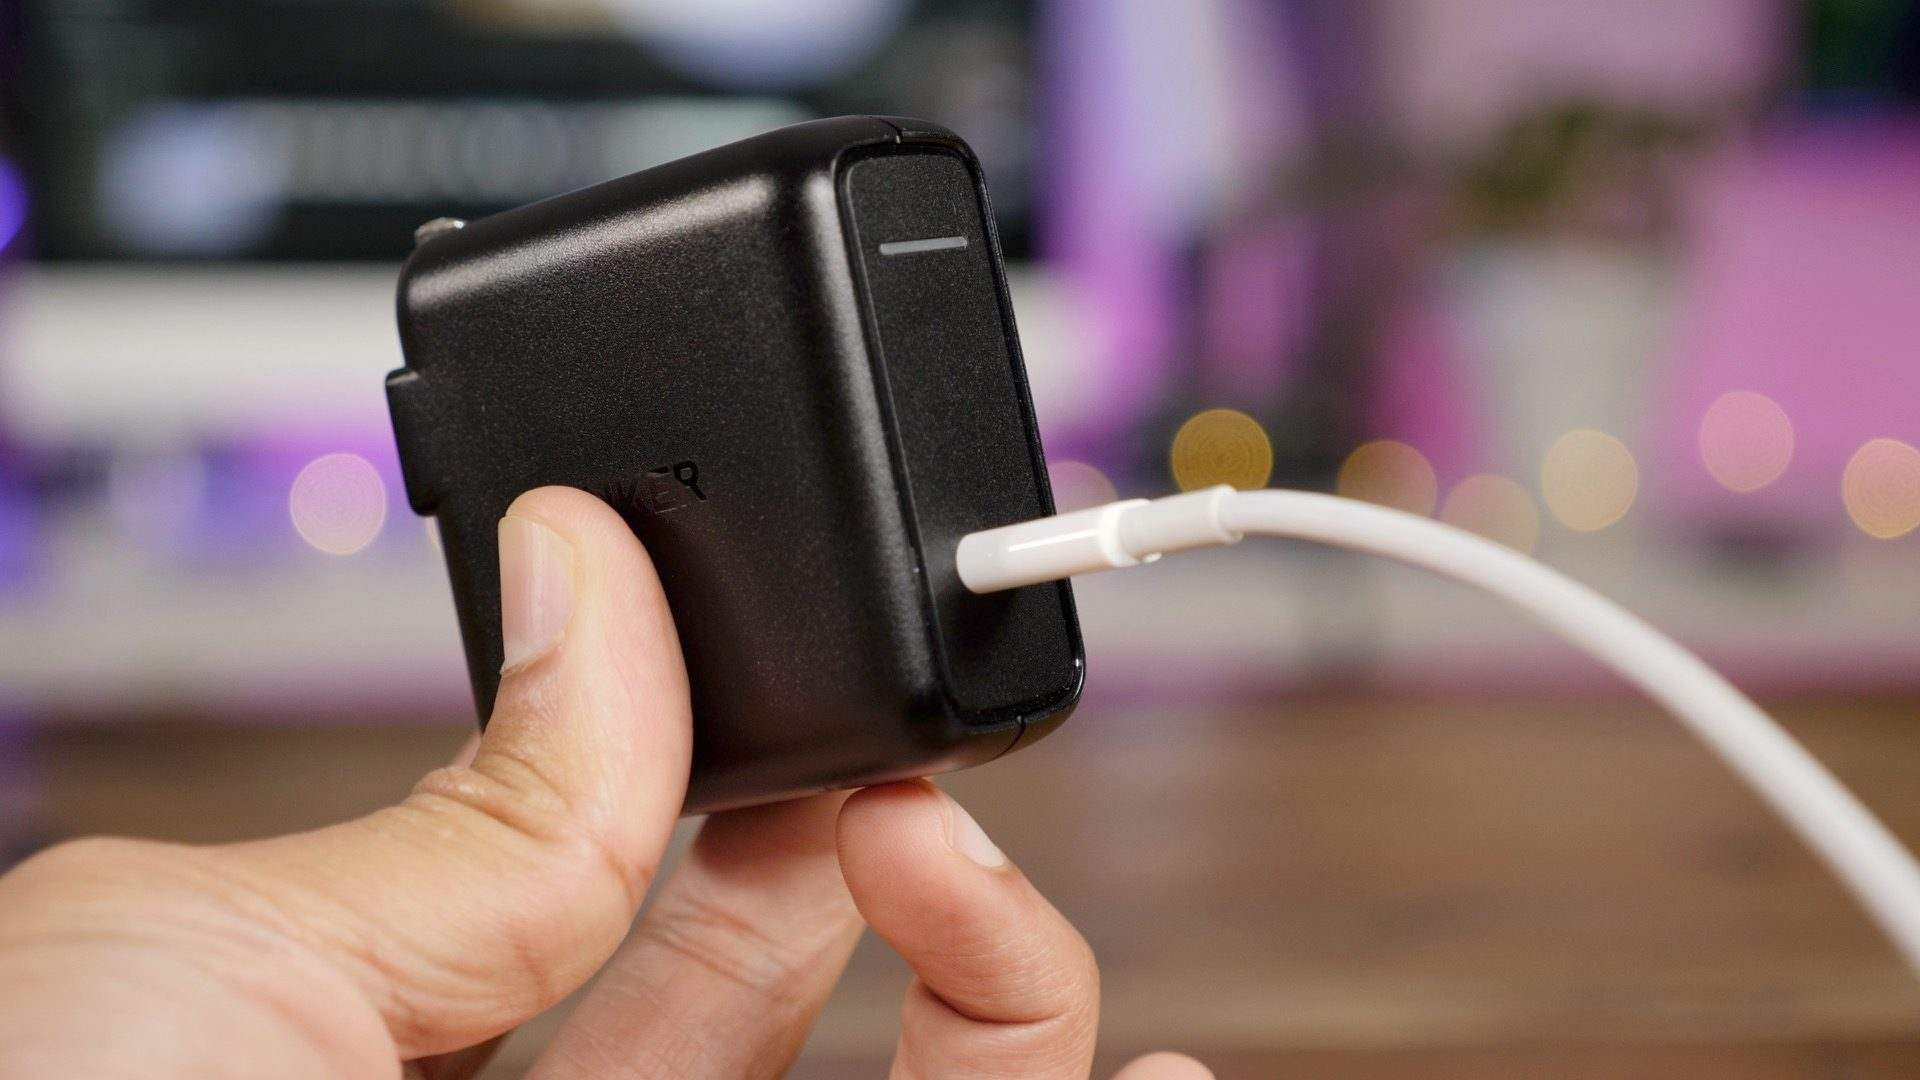 Apple's Latest iPhones are Shipping W/ a Puny 5W Charger, Try these Faster Alternatives Instead